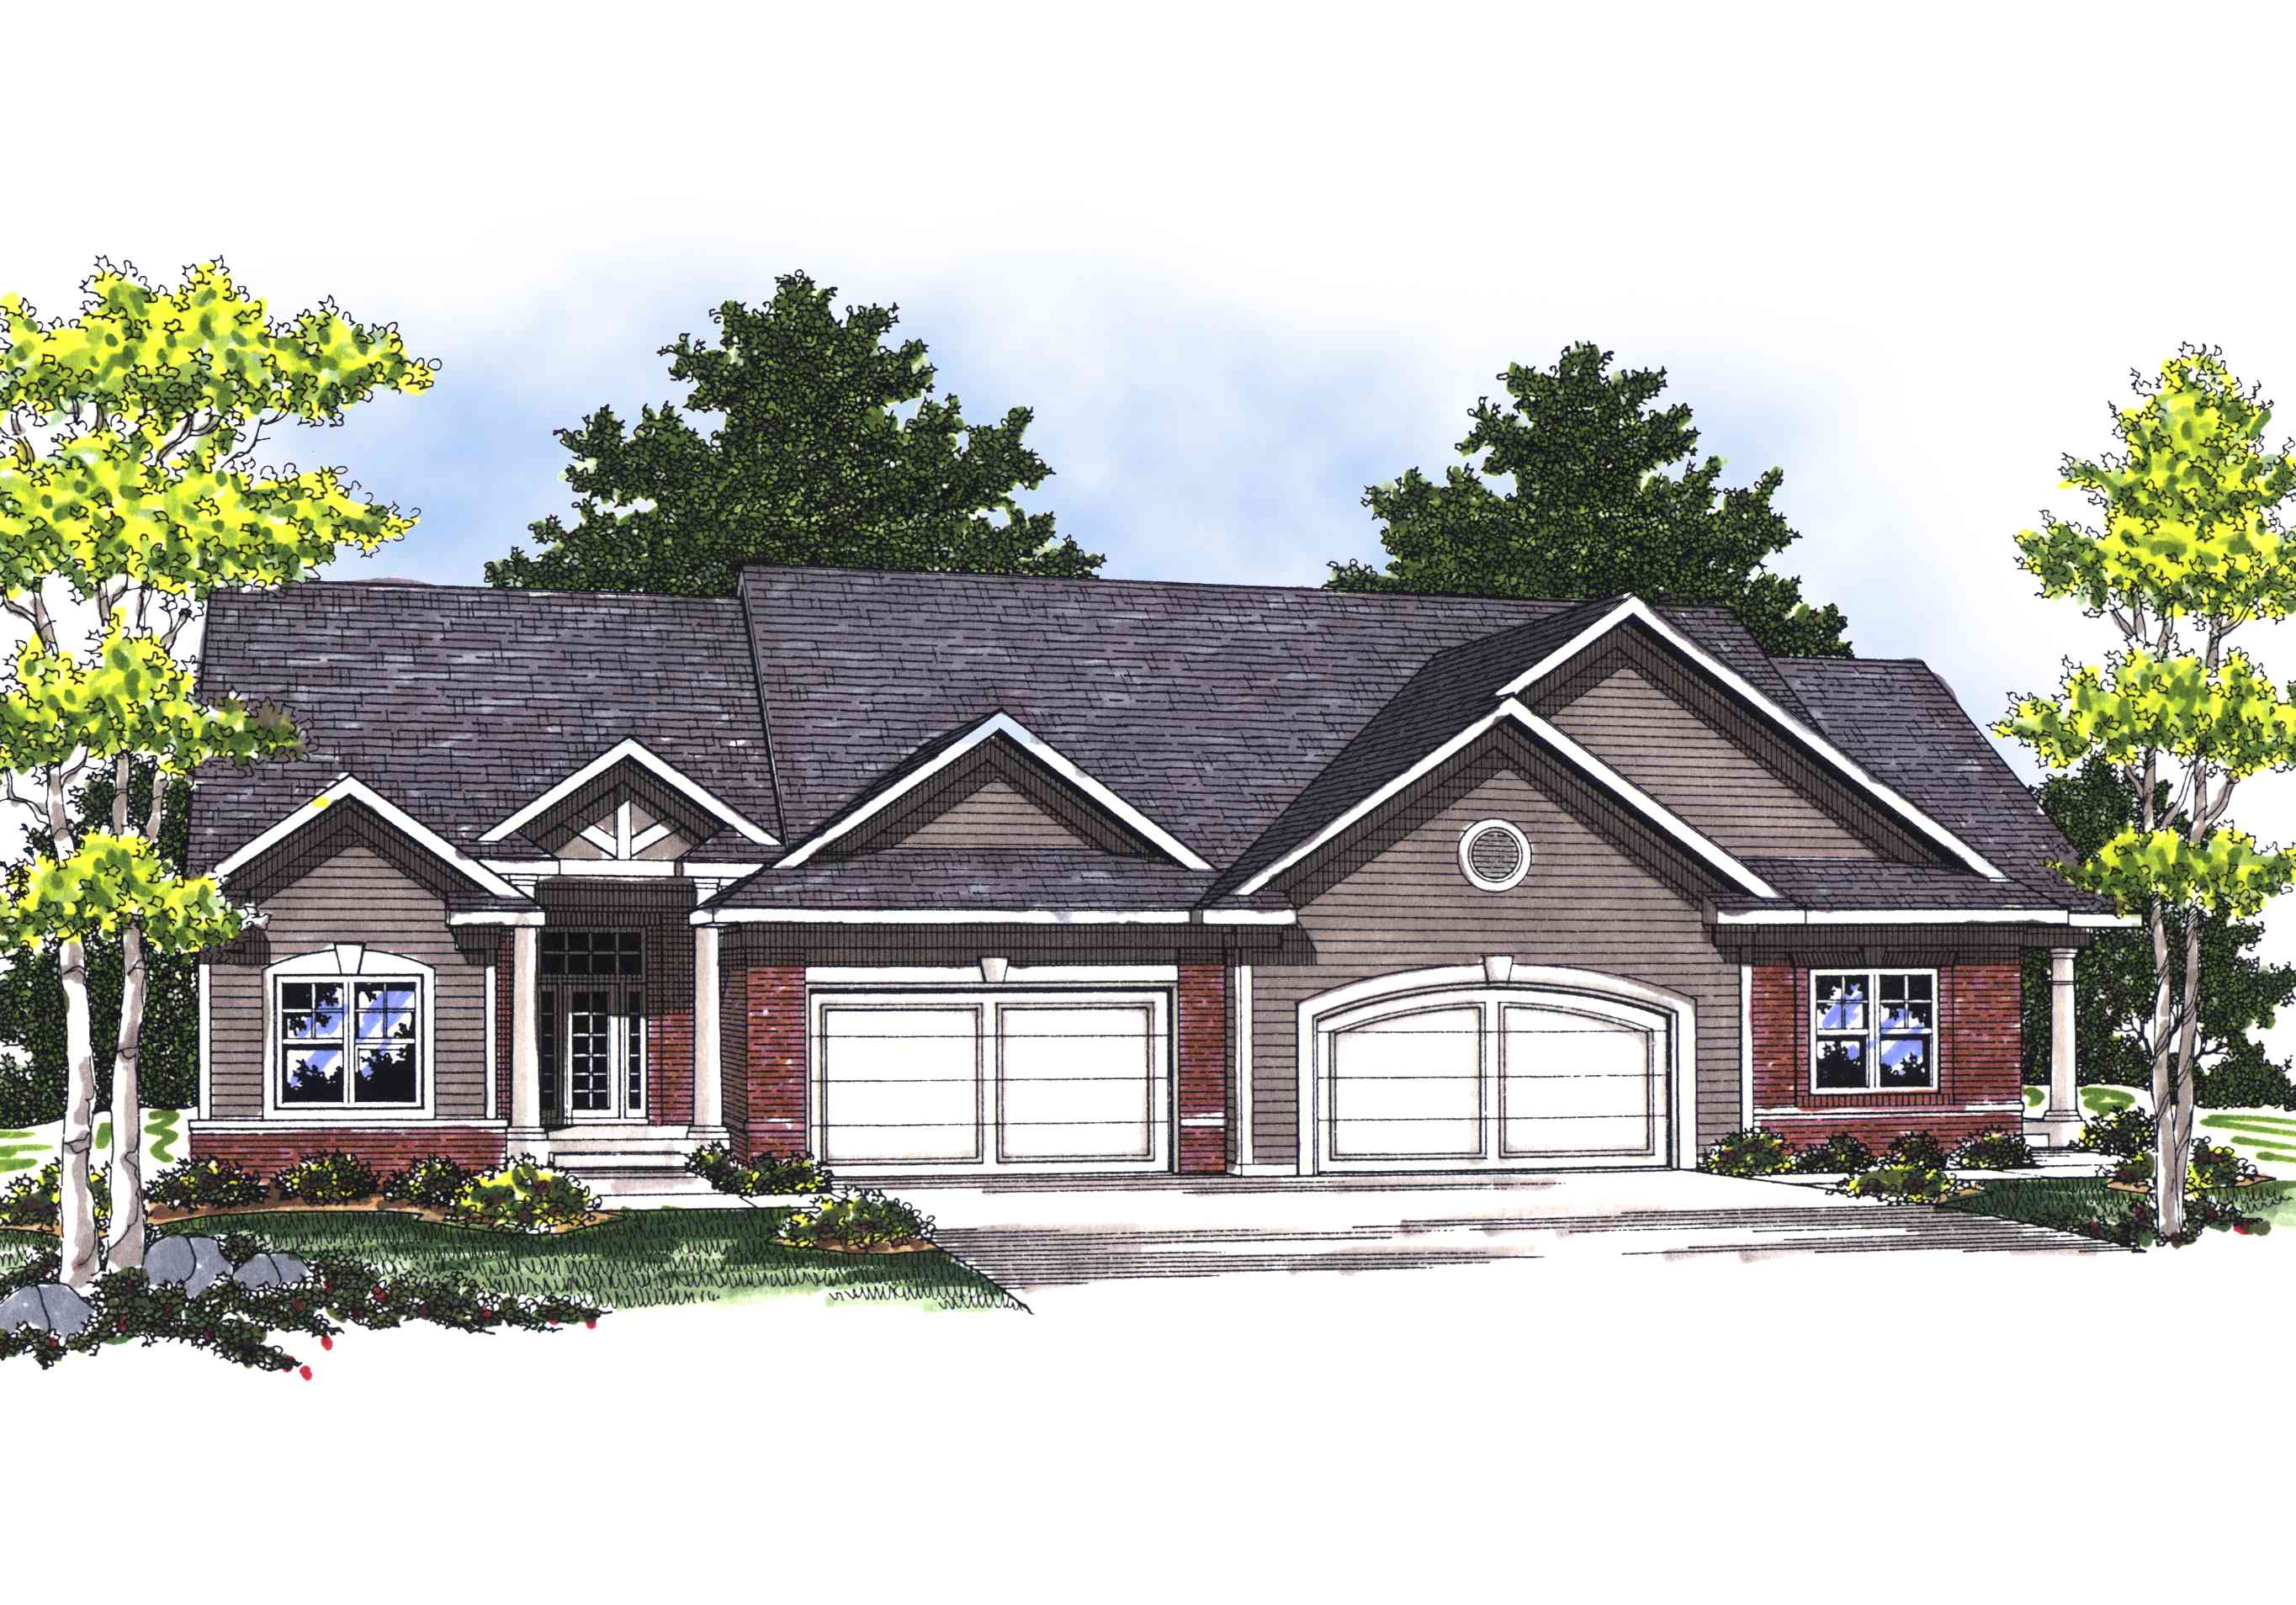 Traditional ranch duplex 89253ah architectural designs for Architecturaldesigns com house plan 56364sm asp